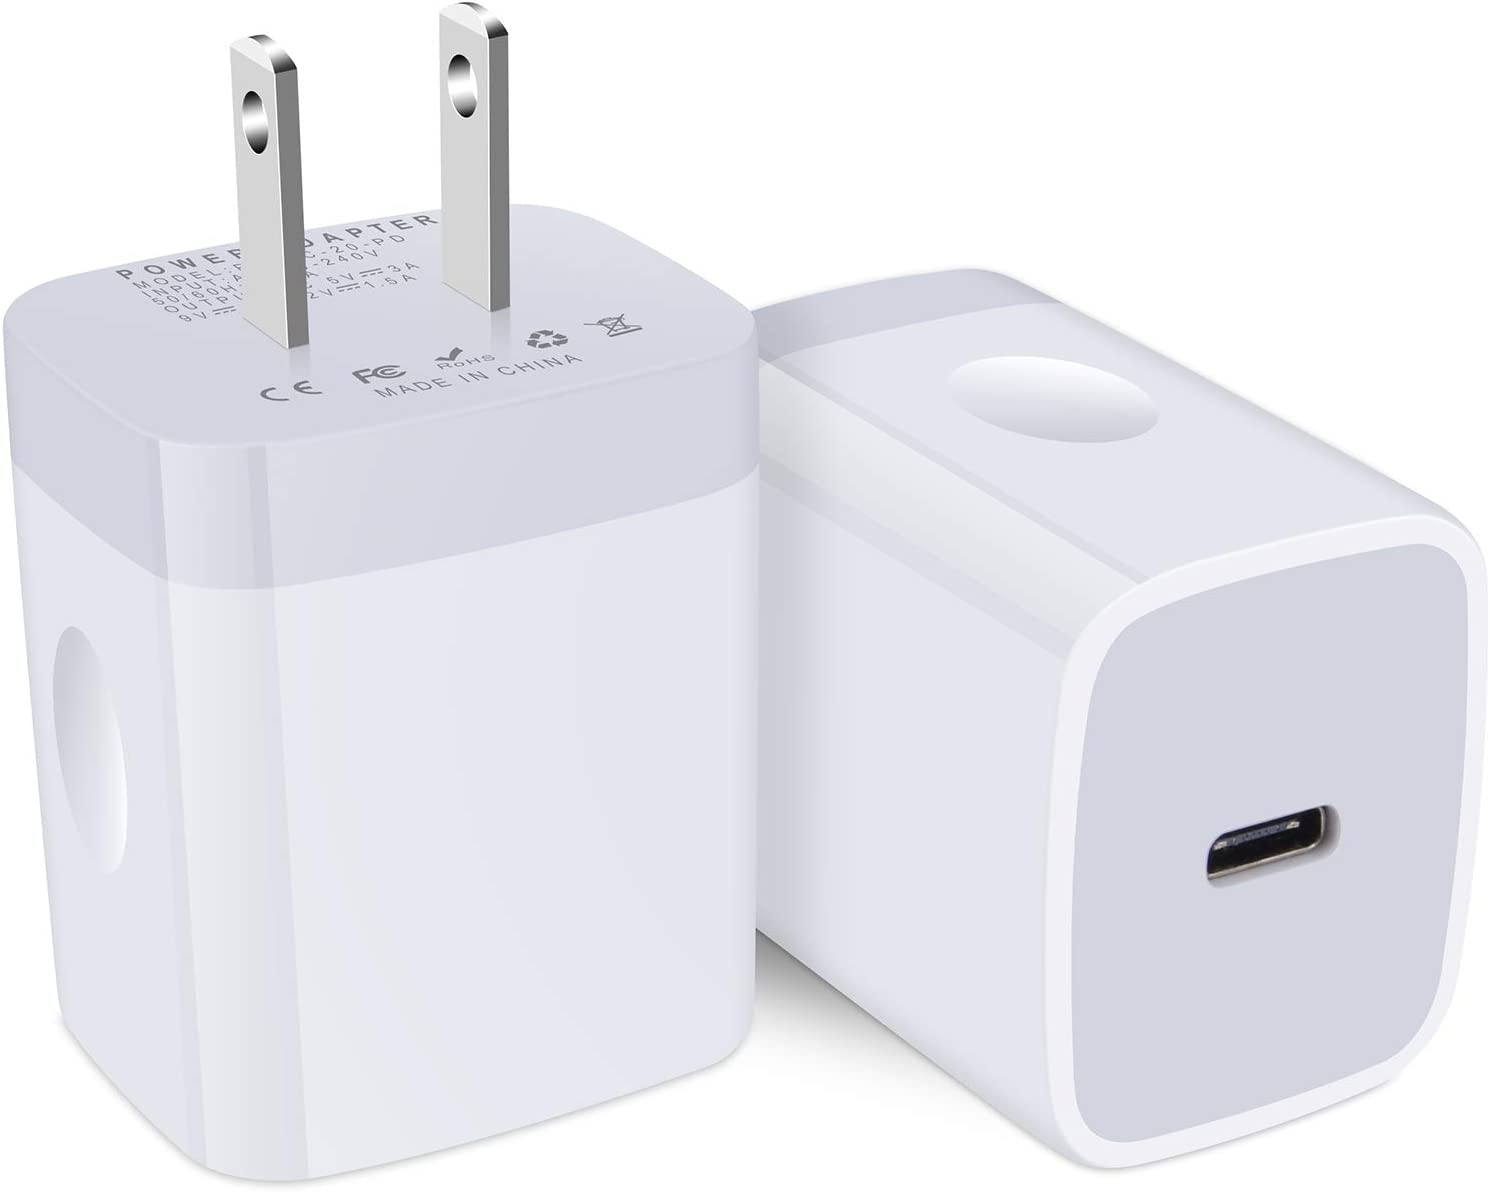 iPhone 12 Charger Cube Fast Charging, Power Delivery 20W USB C Charger Wall Plug Adapter PD 3.0 Type C Fast Charging Block 2-Pack Compatible iPhone SE 2020/12 Mini/11 Pro Max,Samsung S21 S20 Plus